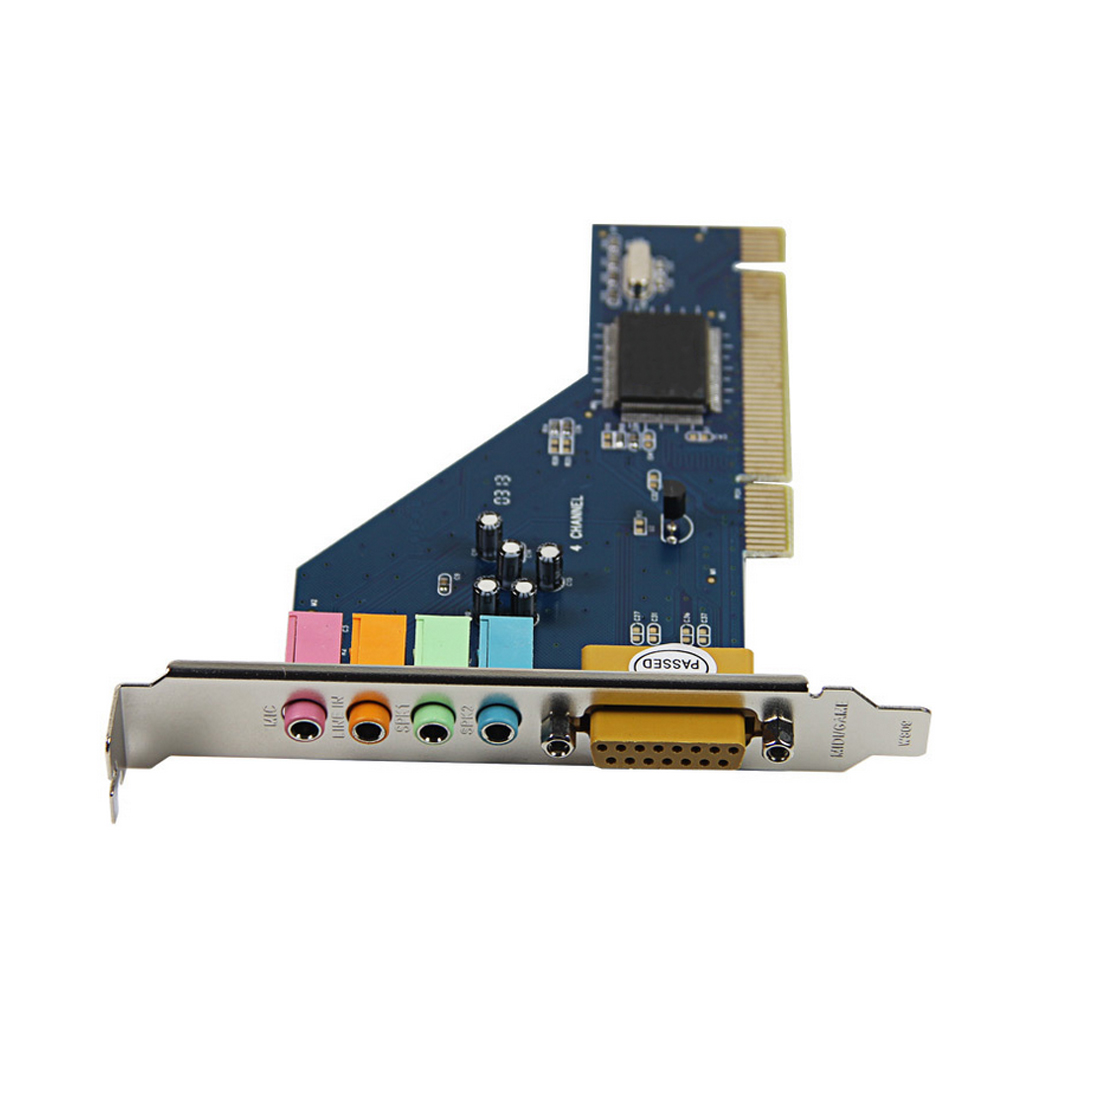 NOYOKERE Hot Sale High Quality 4 Channel 8738 Chip 3D Audio Stereo PCI Sound Card for Win7 64 Bit цена